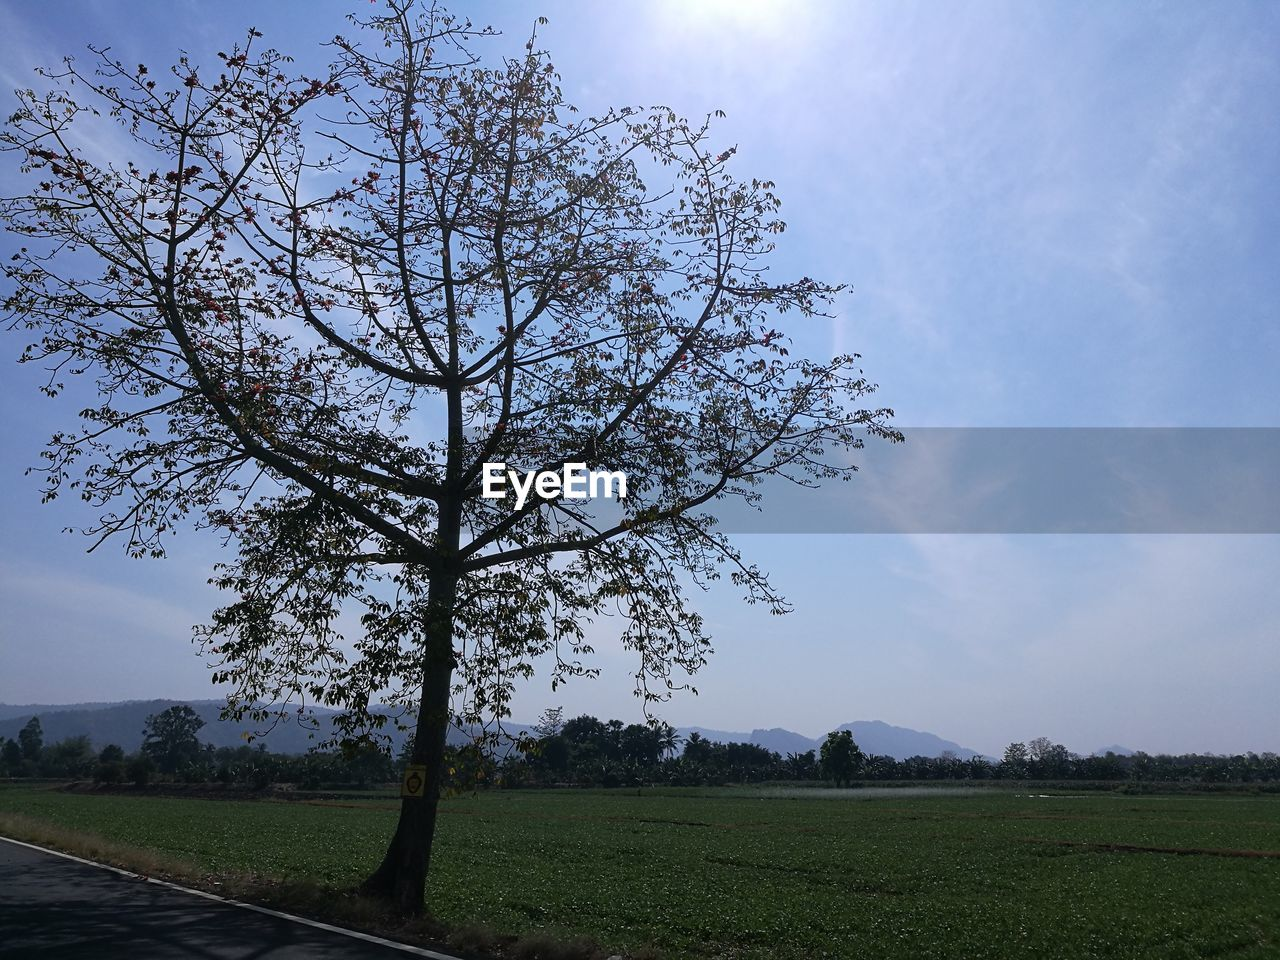 tree, sky, plant, field, landscape, tranquility, beauty in nature, nature, tranquil scene, land, environment, cloud - sky, scenics - nature, growth, no people, day, grass, outdoors, non-urban scene, idyllic